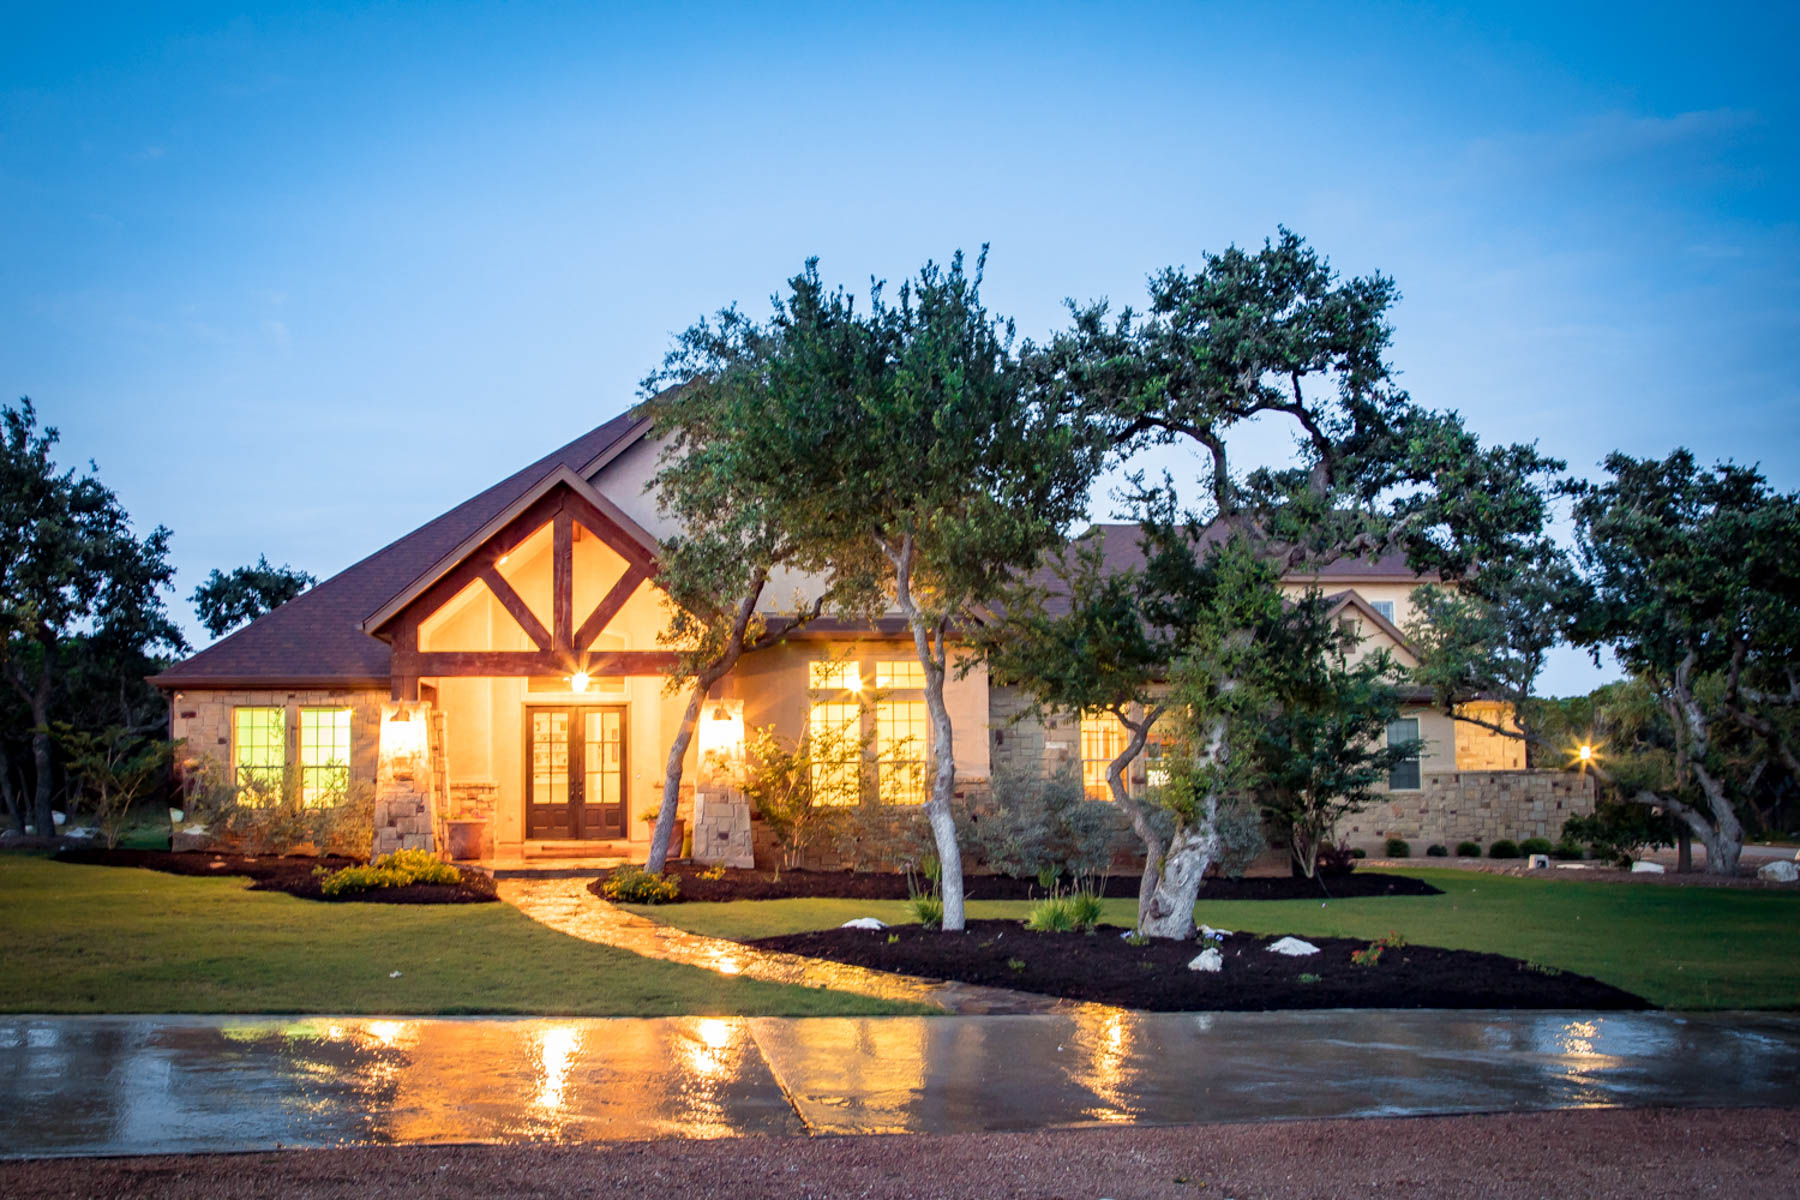 Single Family Home for Sale at Gorgeous Custom Home on Large Hill Country Lot 840 Haven Point Loop New Braunfels, Texas 78132 United States